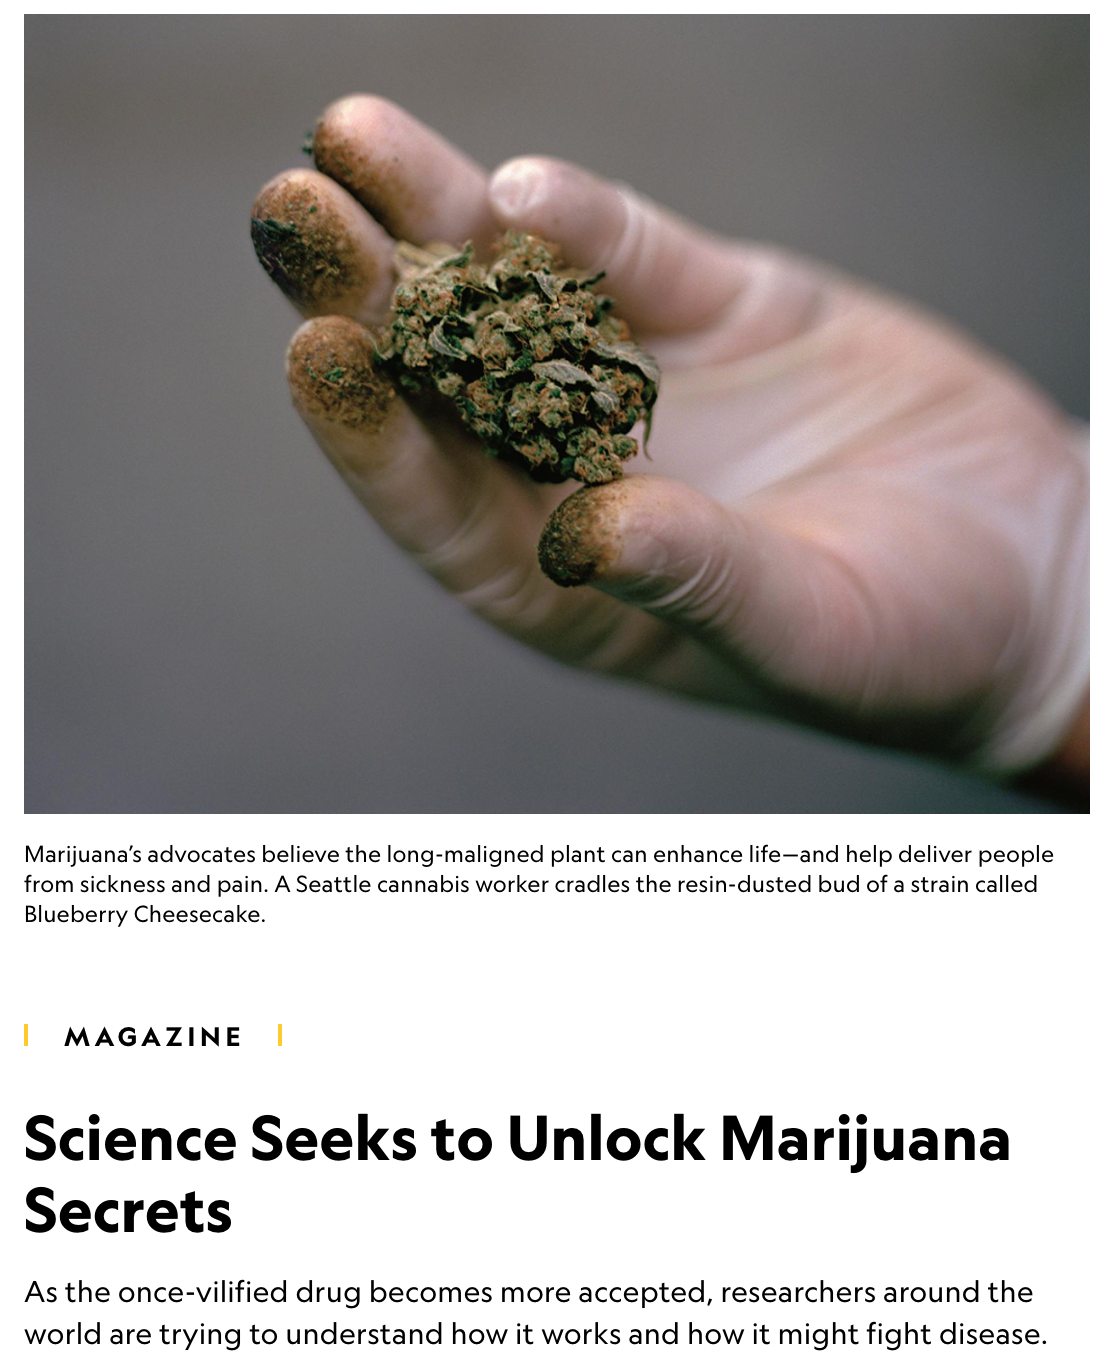 Science seeks to unlock marijuana secrets